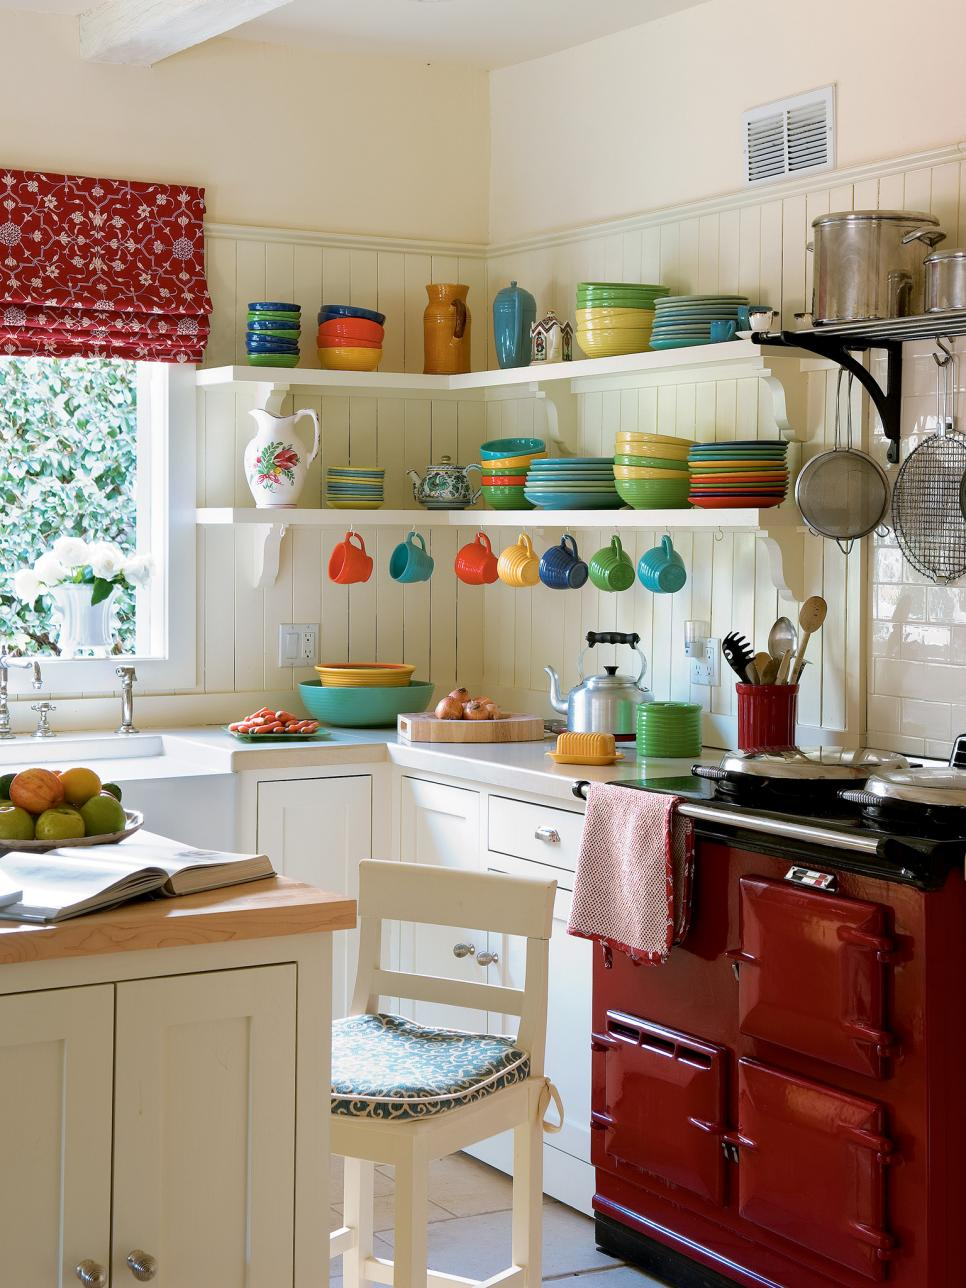 Kitchen Ideas For Small Kitchens Pictures Of Small Kitchen Design Ideas From Hgtv  Hgtv